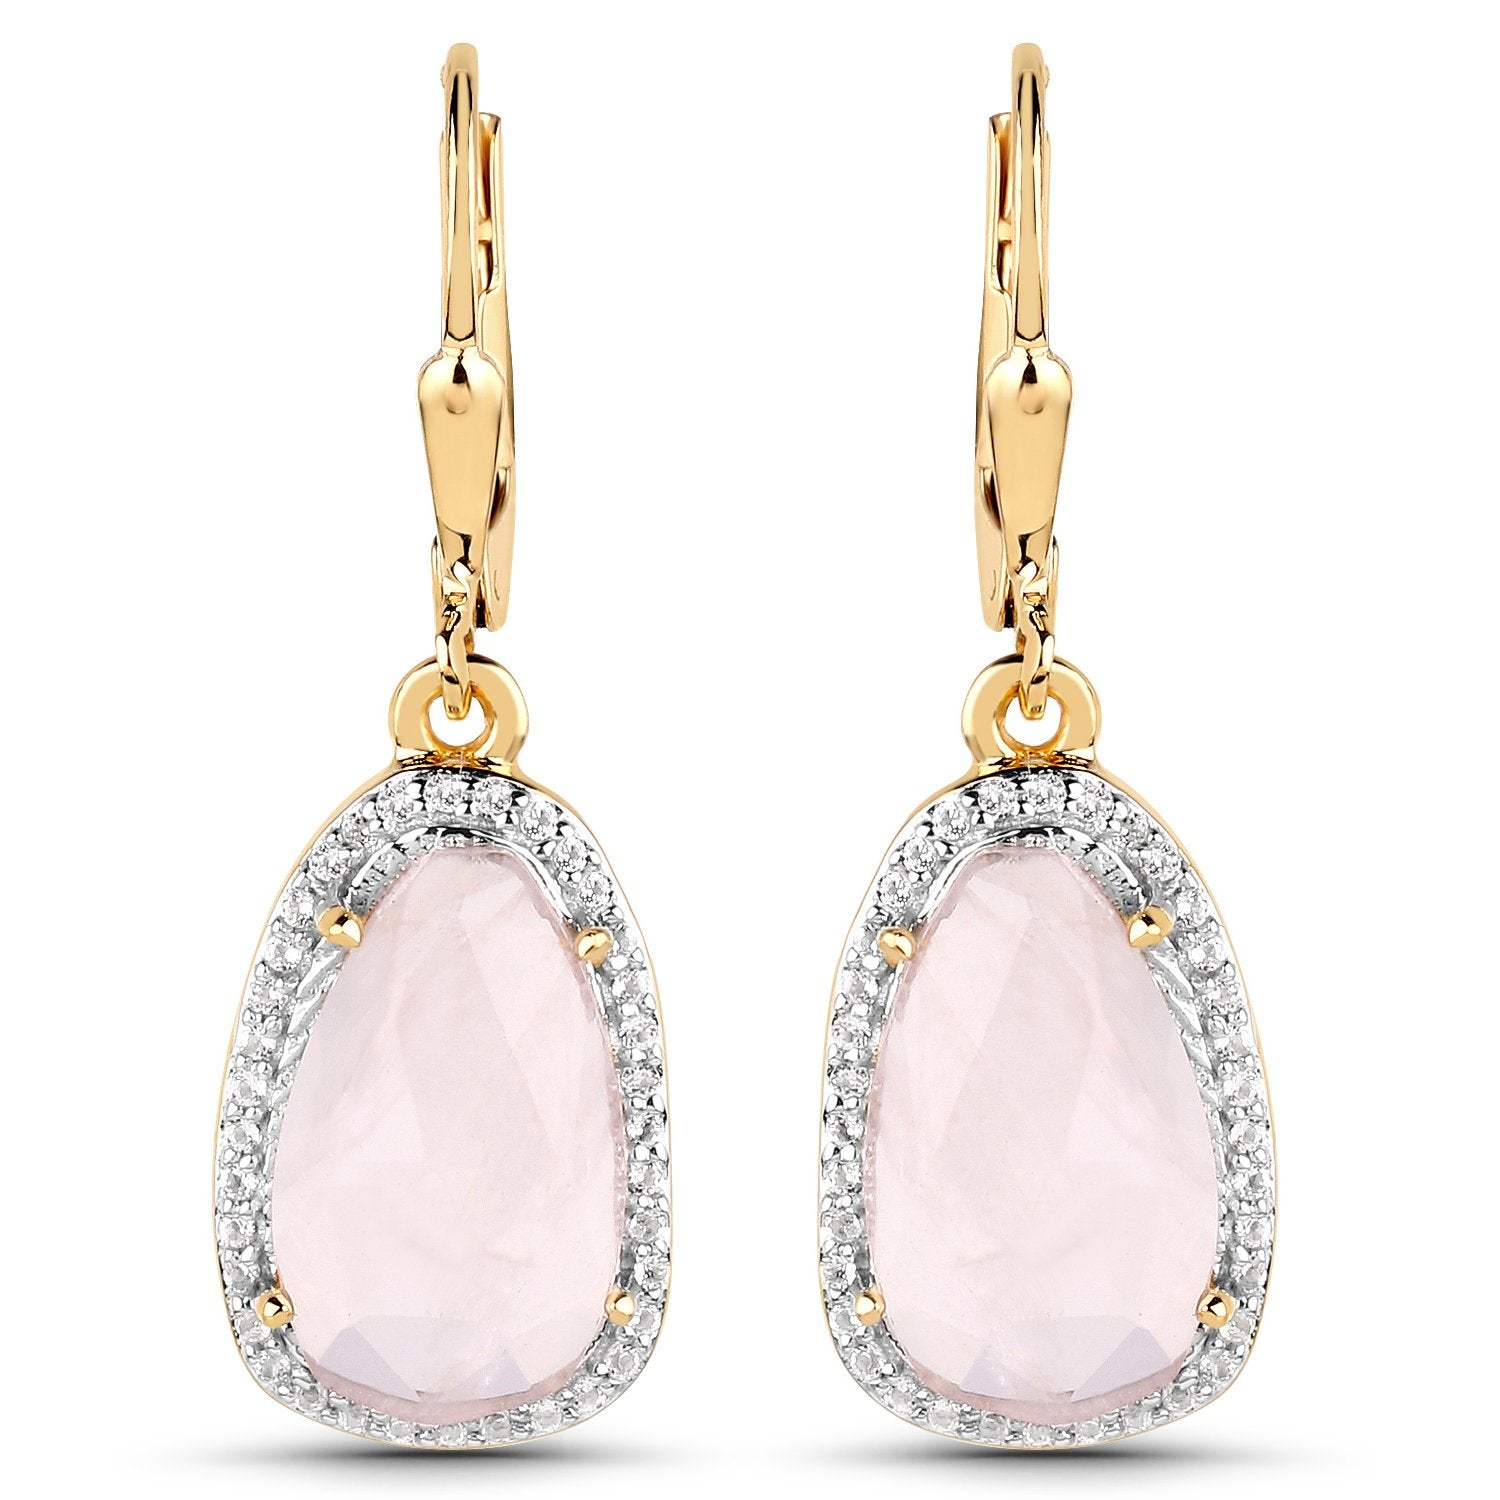 LoveHuang 6.72 Carats Genuine Rose Quartz and White Topaz Dangle Earrings Solid .925 Sterling Silver With 18KT Yellow Gold Plating